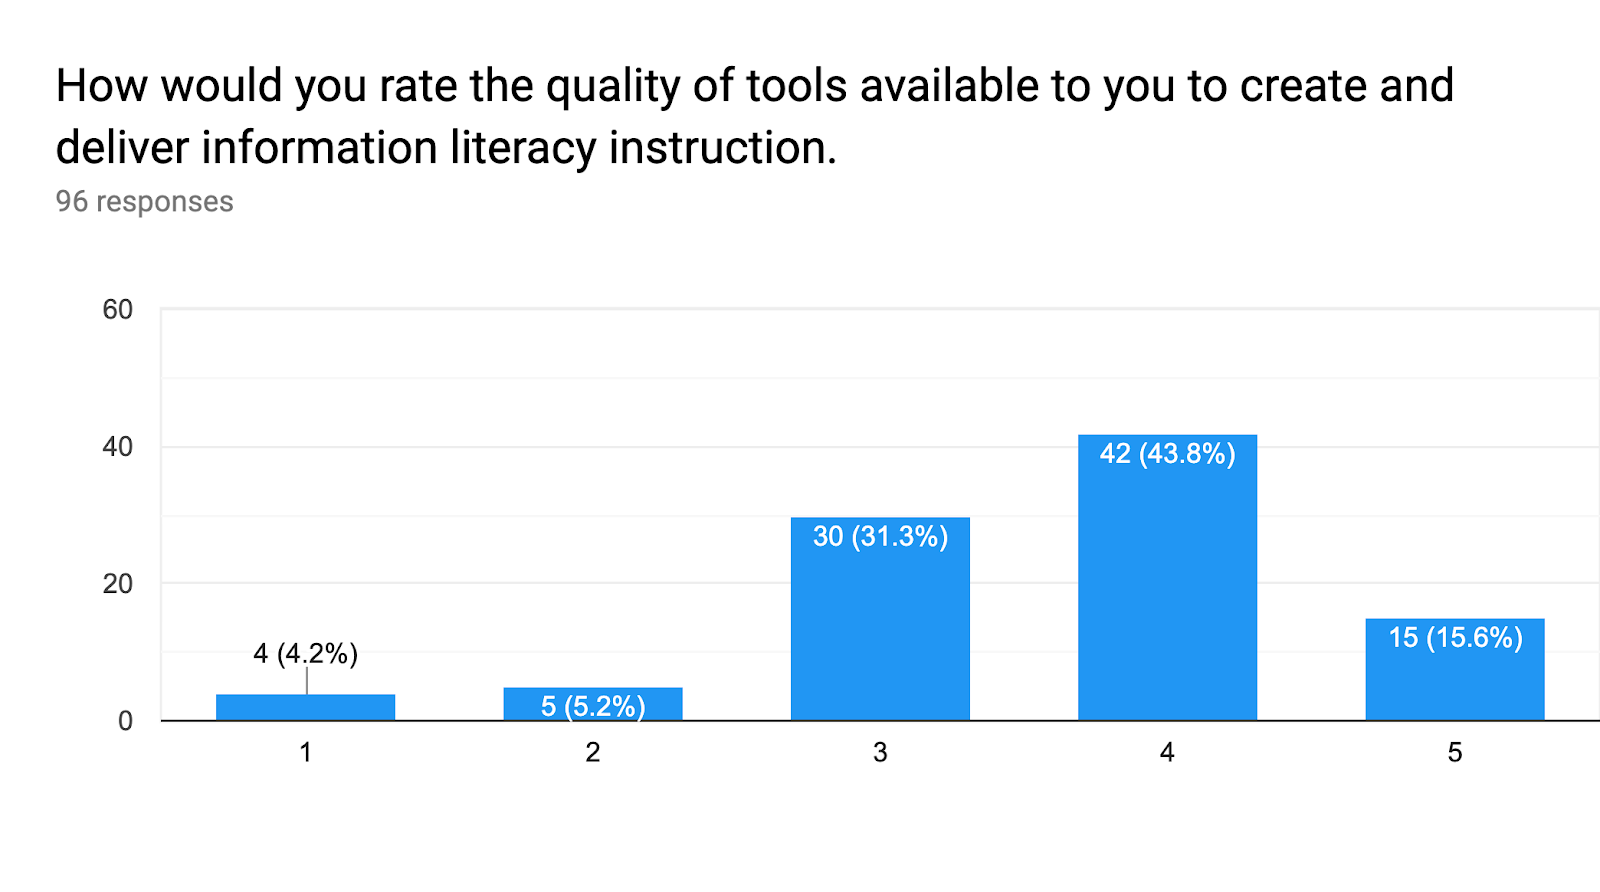 Forms response chart. Question title: How would you rate the quality of tools available to you to create and deliver information literacy instruction.. Number of responses: 96 responses.